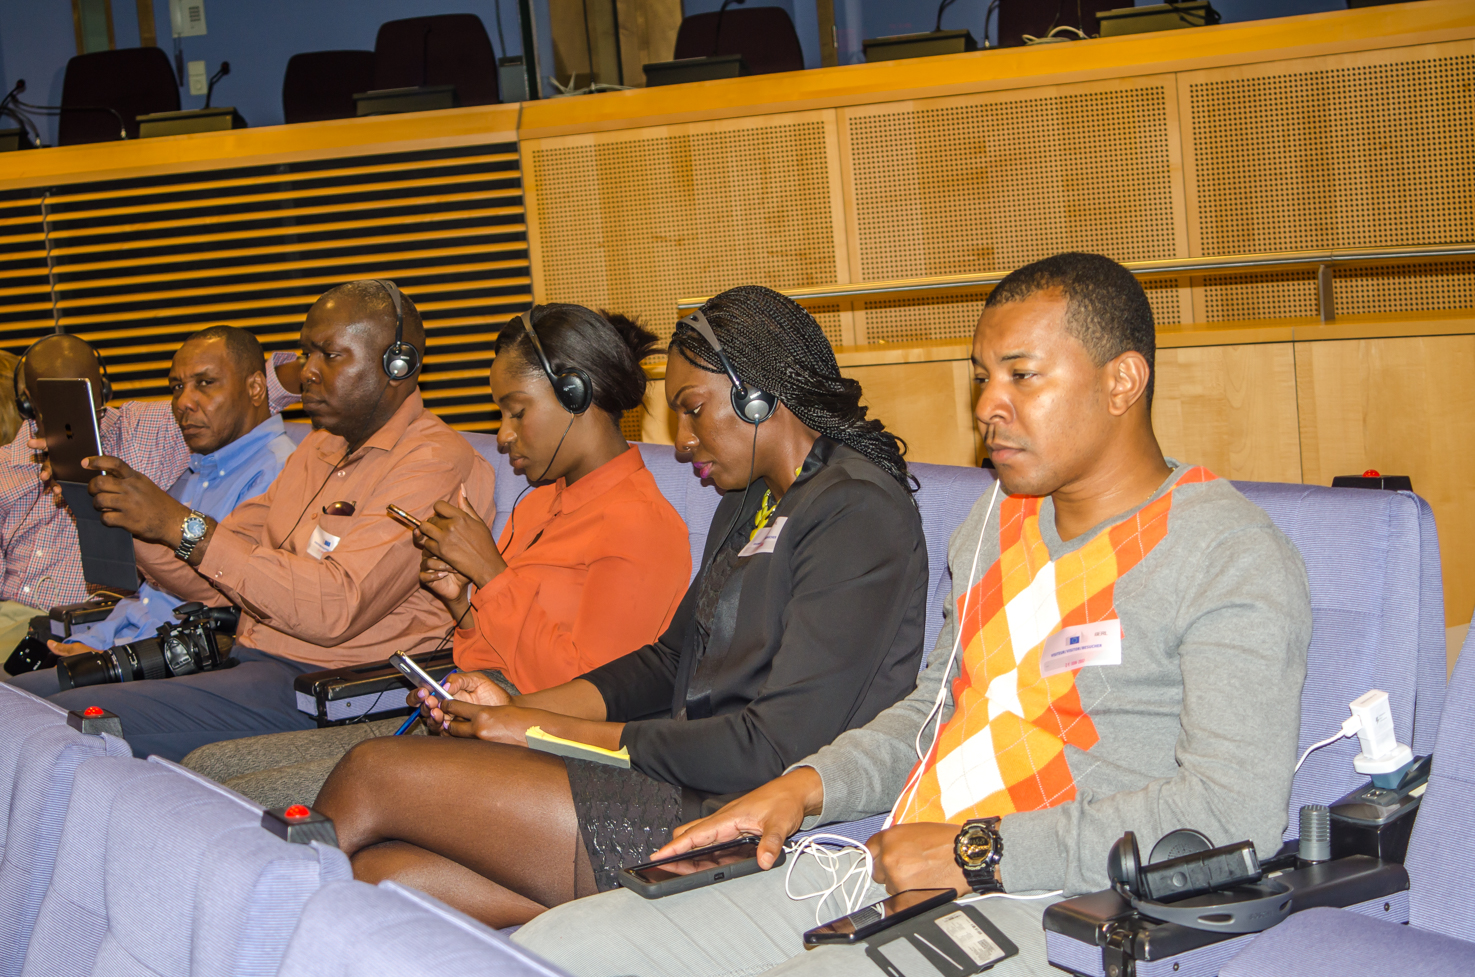 Caribbean Journalists @ Press Briefing5A